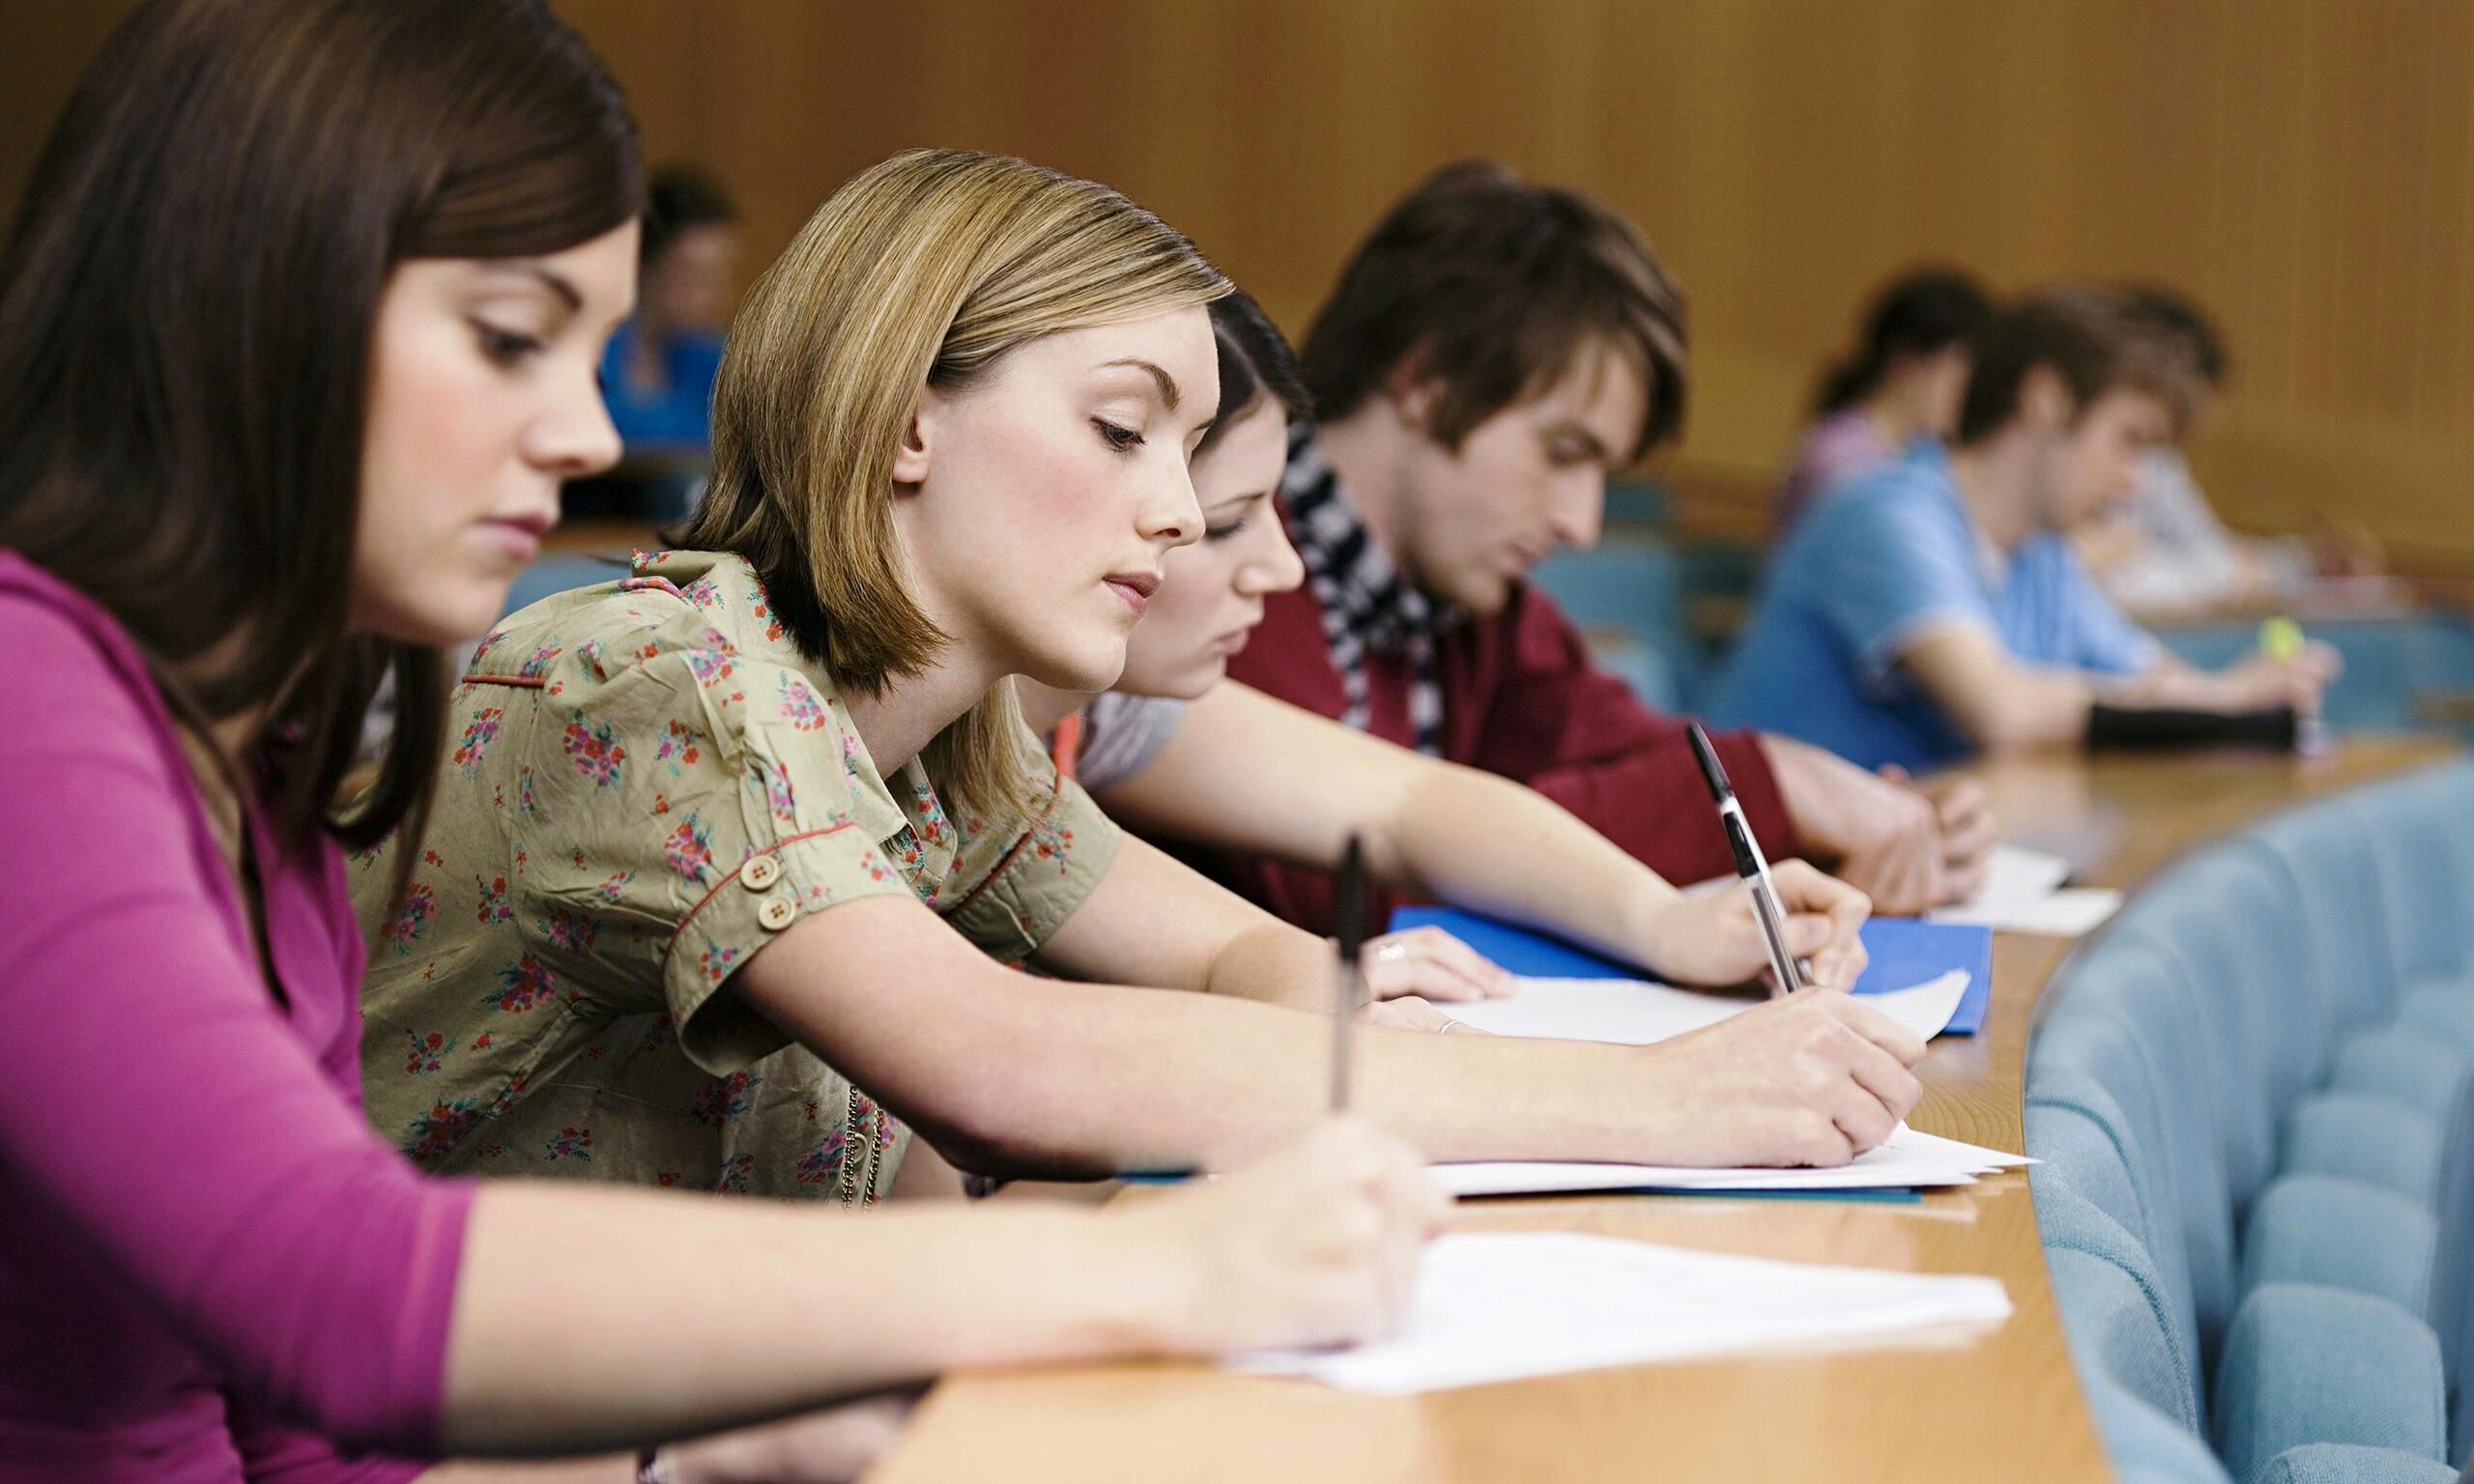 psychology case studies for high school students This course can help prepare students who wish to continue their social studies education after high school  ap psychology  case studies students.